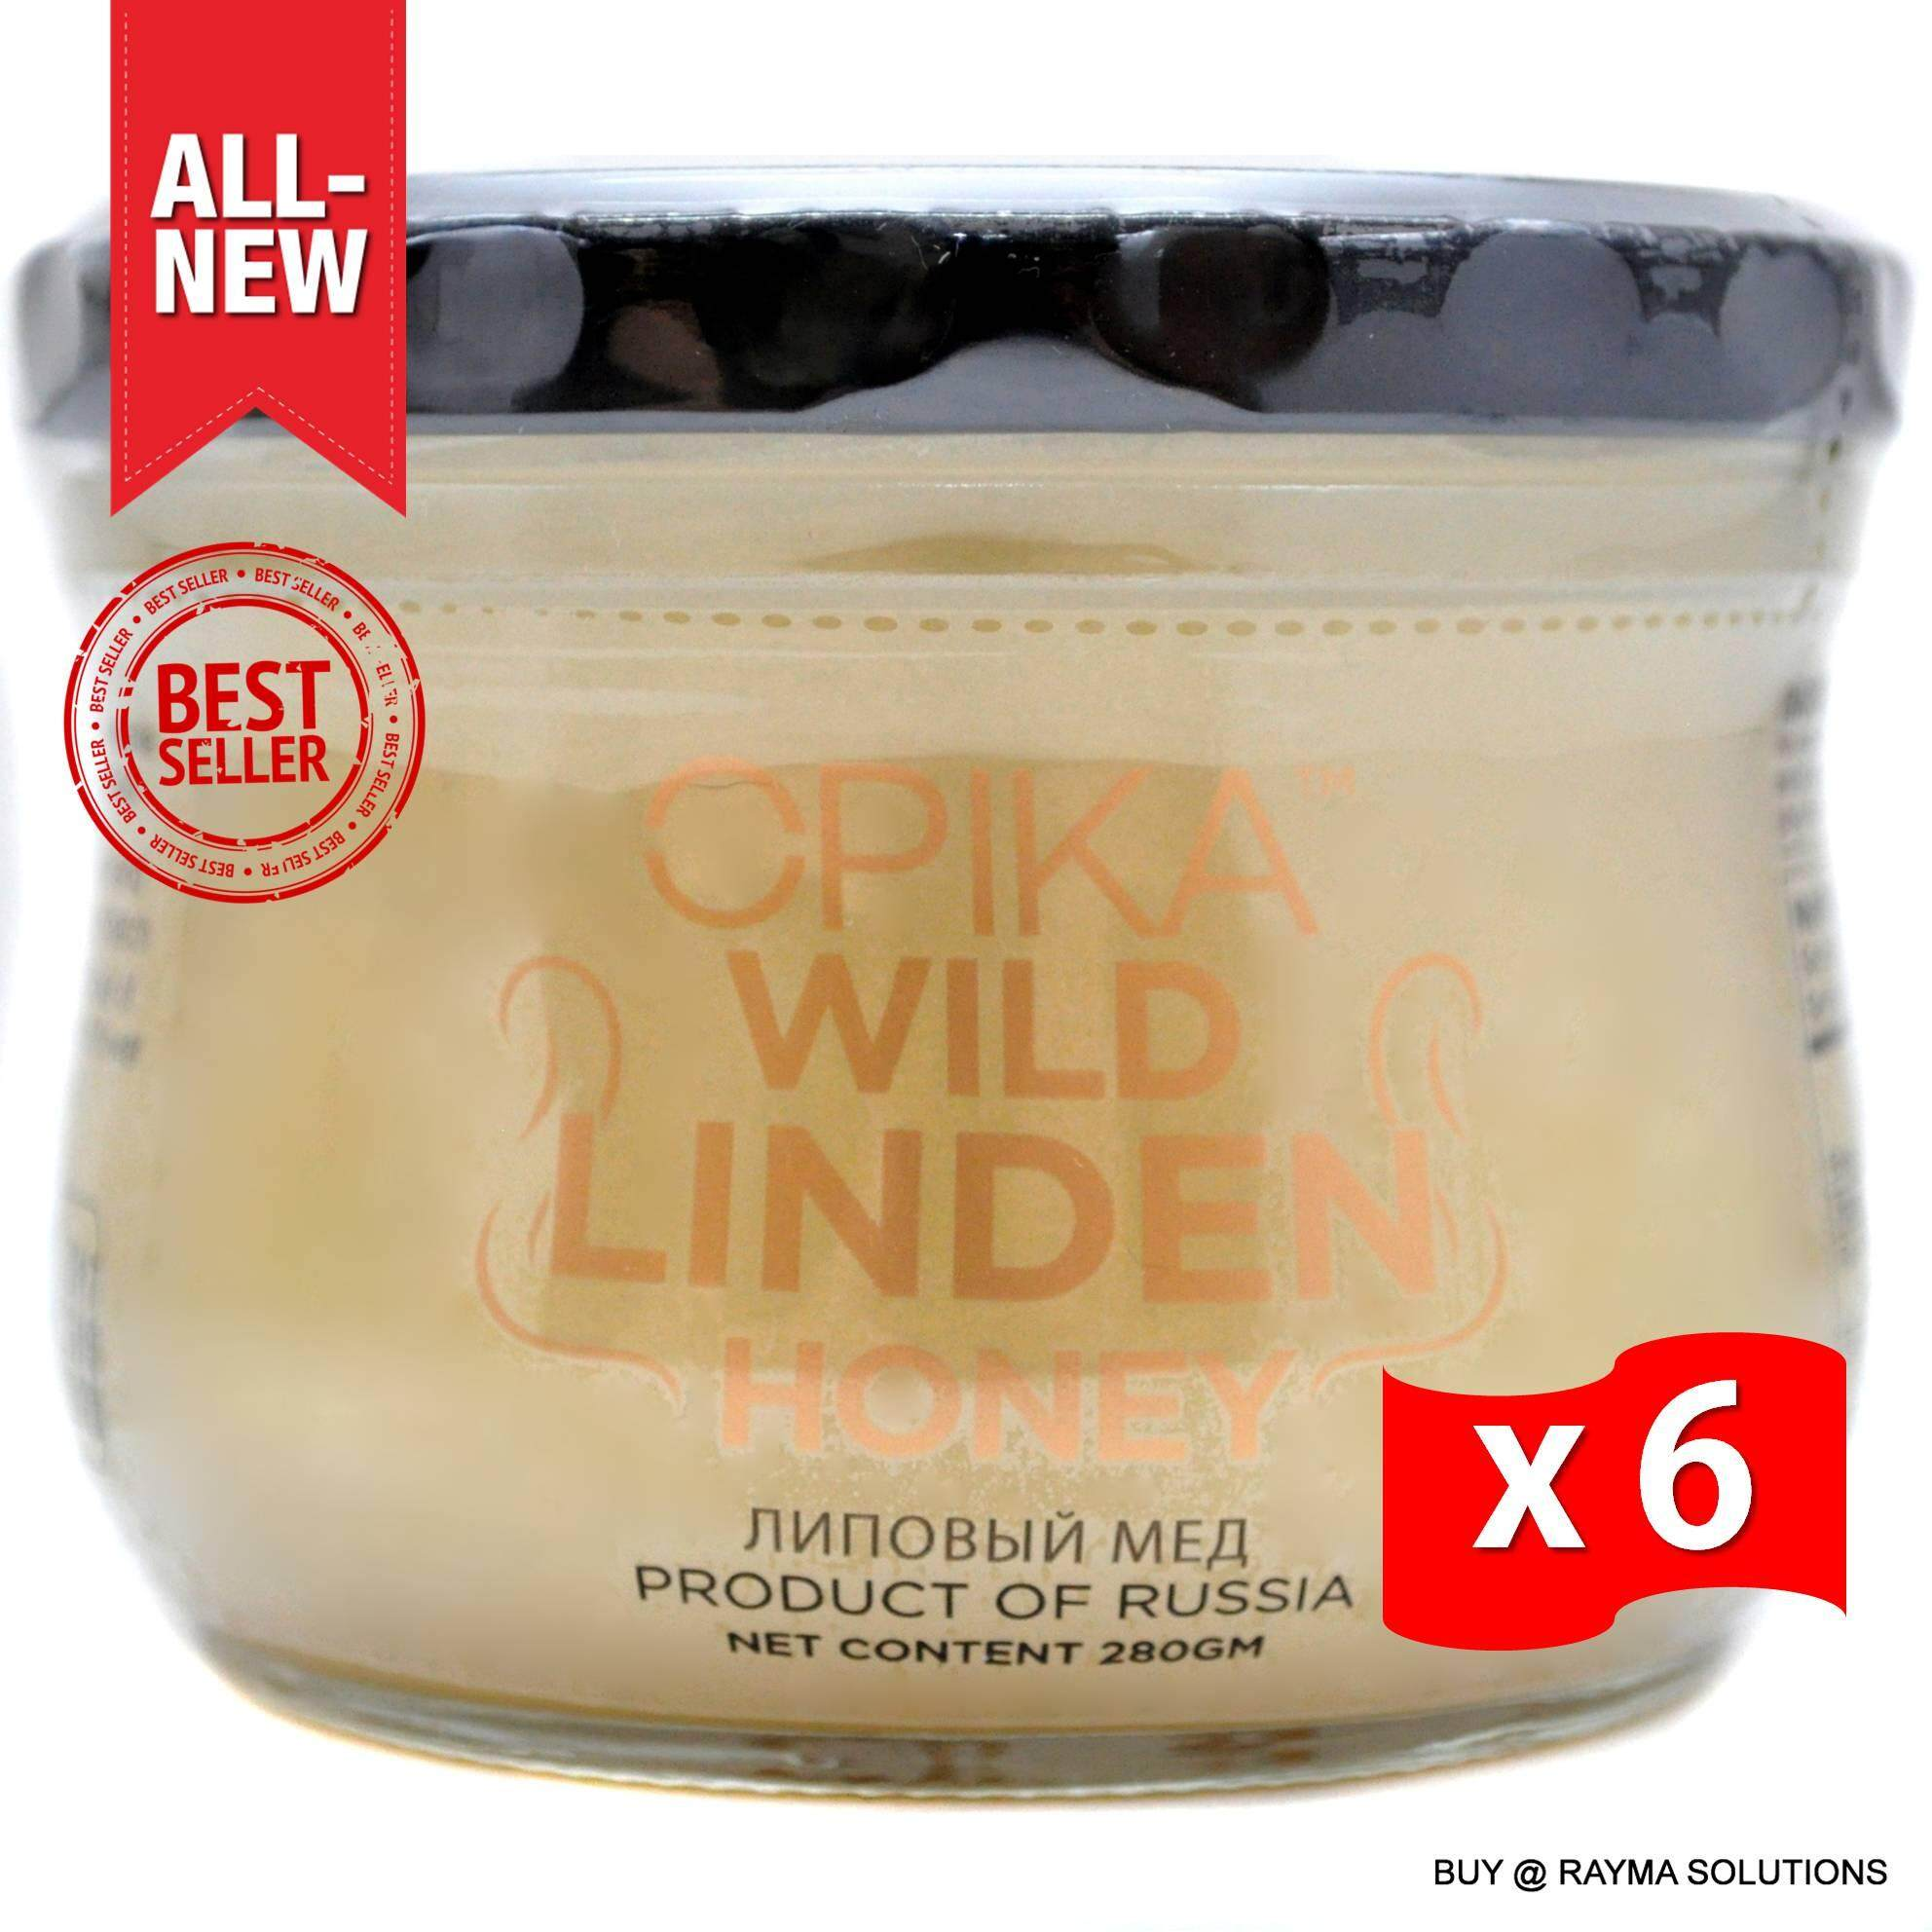 [BEST DEAL] OPIKA Wild Linden Russian Honey 280g (6 Jars)